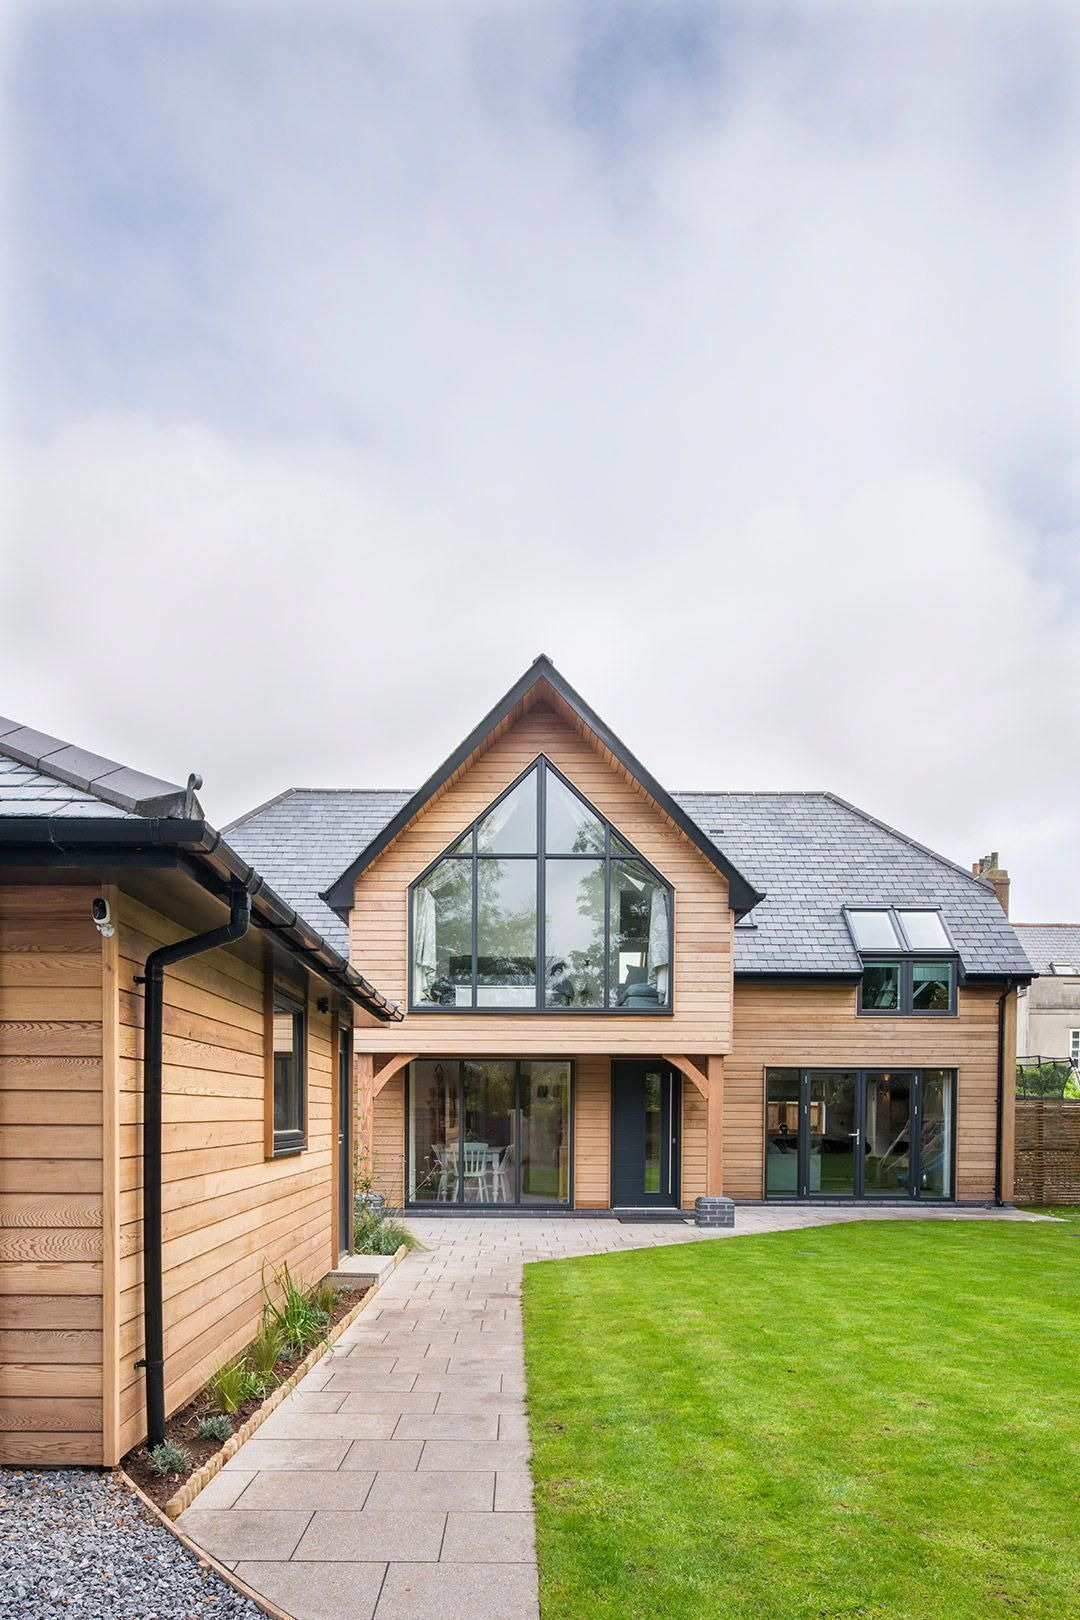 Cost to Build Modern Home Fresh Bud Build This House Was Built for £300k with Potton